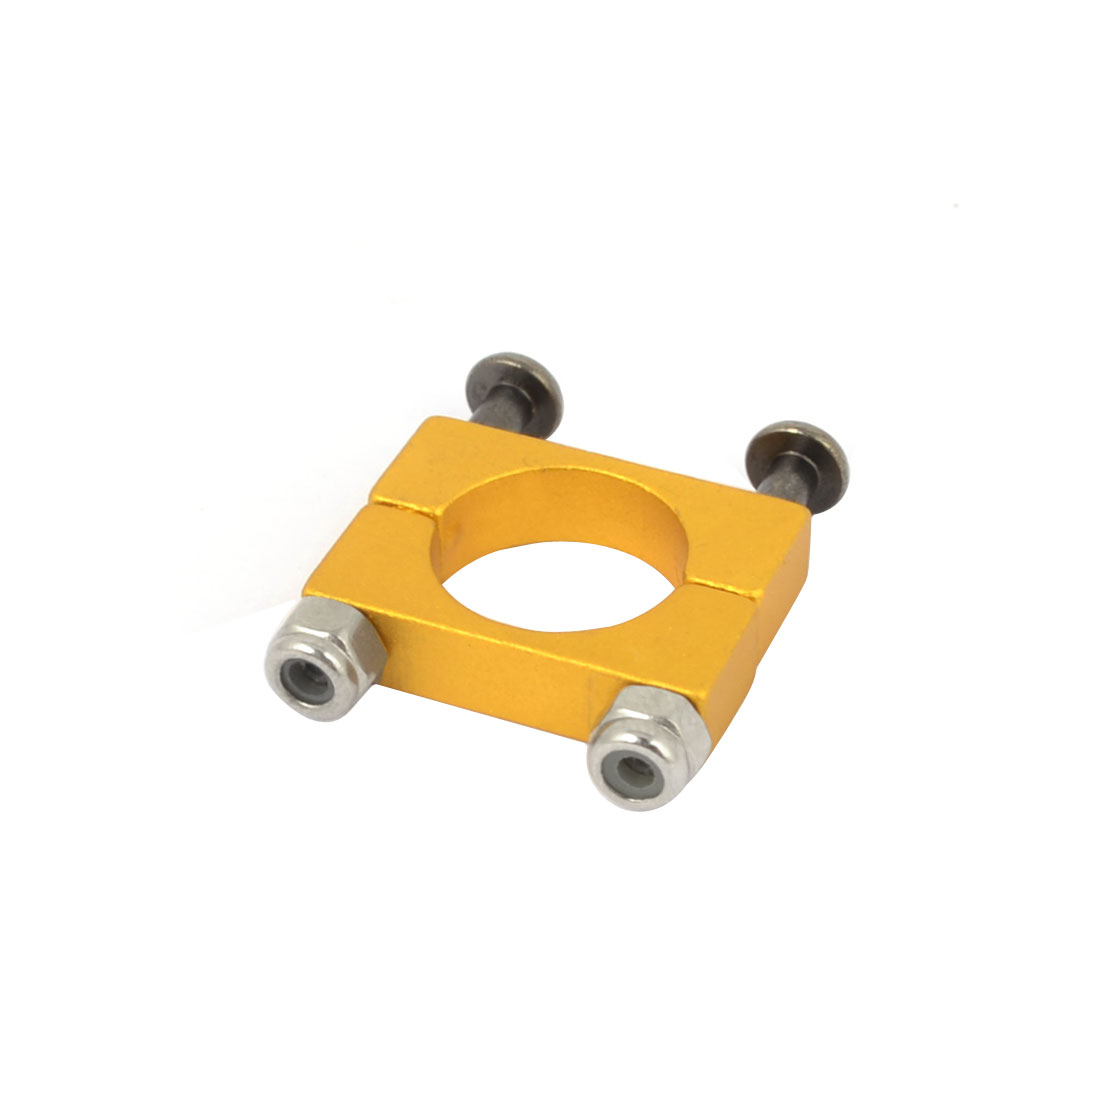 CNC Alloy 12mm Tube Boom Mount Motor Clamp for DIY Quadcopter Yellow